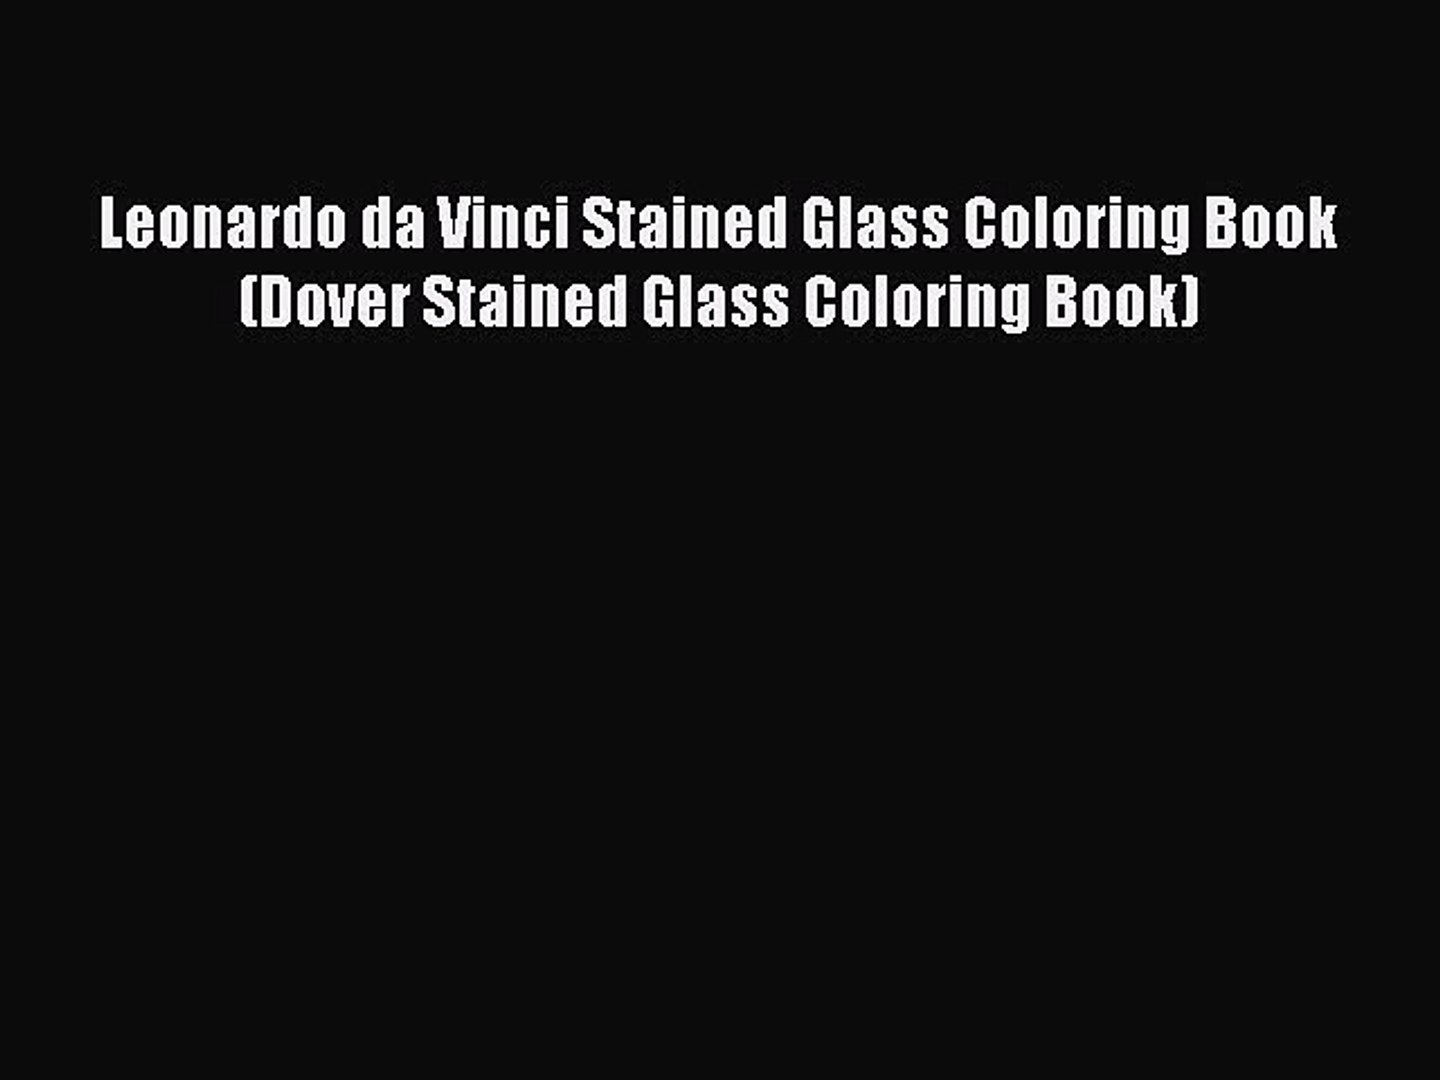 Read Books Leonardo da Vinci Stained Glass Coloring Book (Dover Stained Glass Coloring Book)